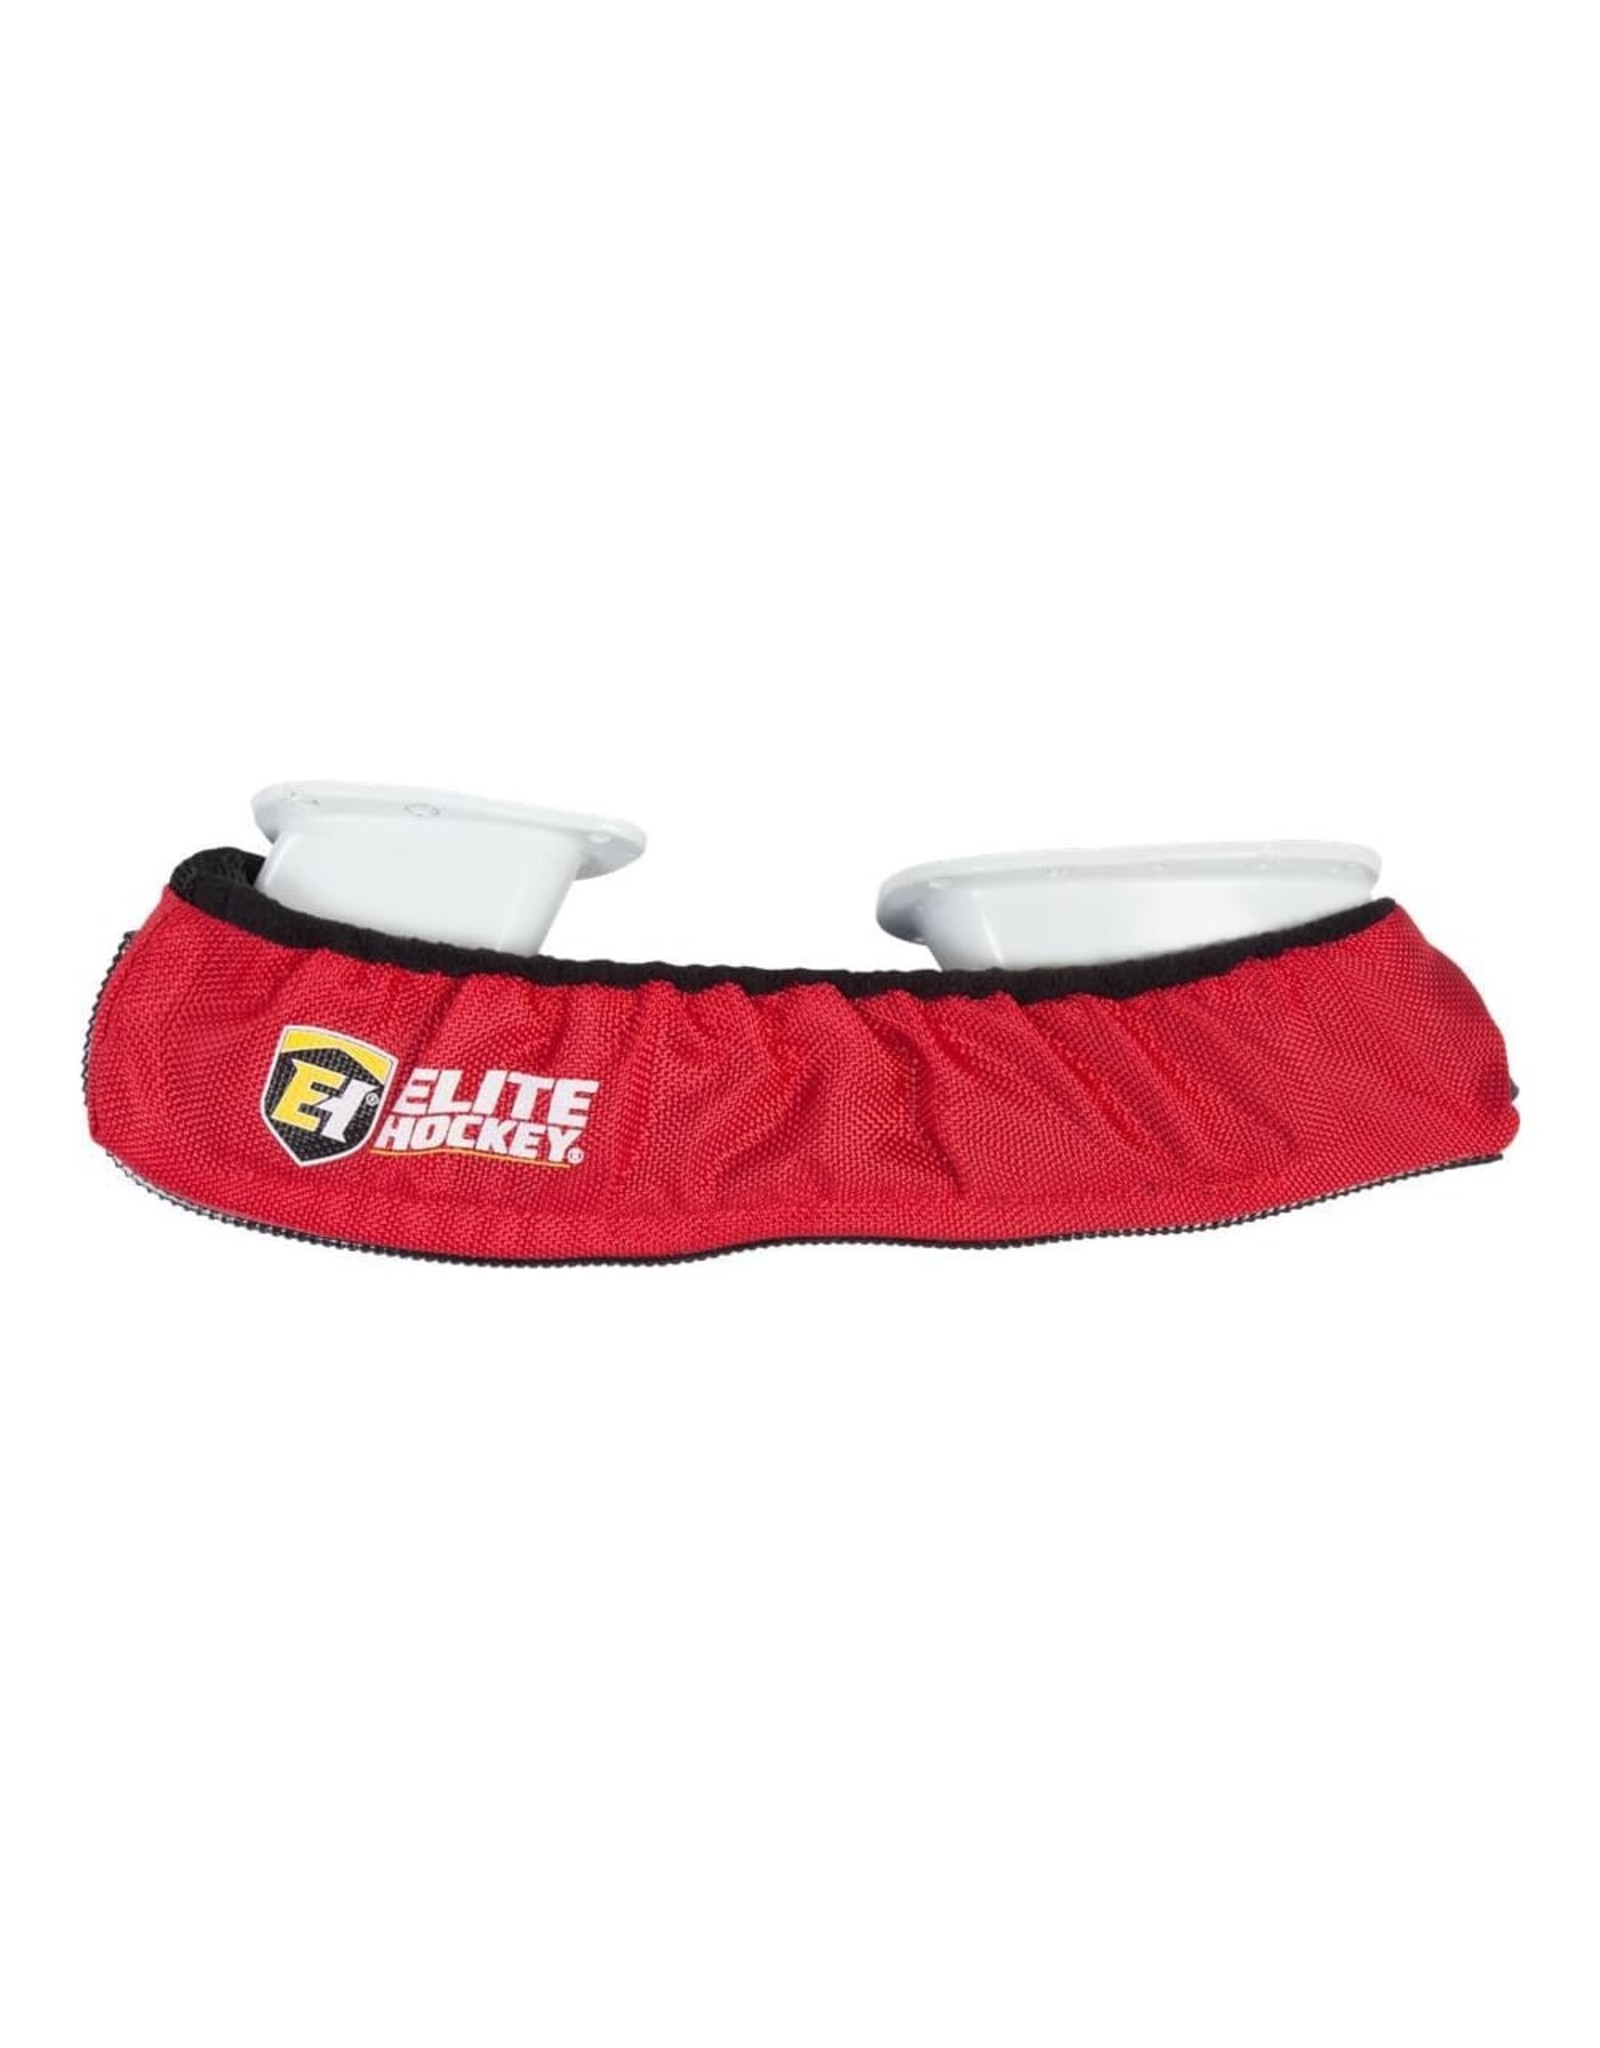 ELITE HOCKEY ELITE PRO SKATE GUARDS RED ( S/P ) YOUTH SIZE : UP TO 13